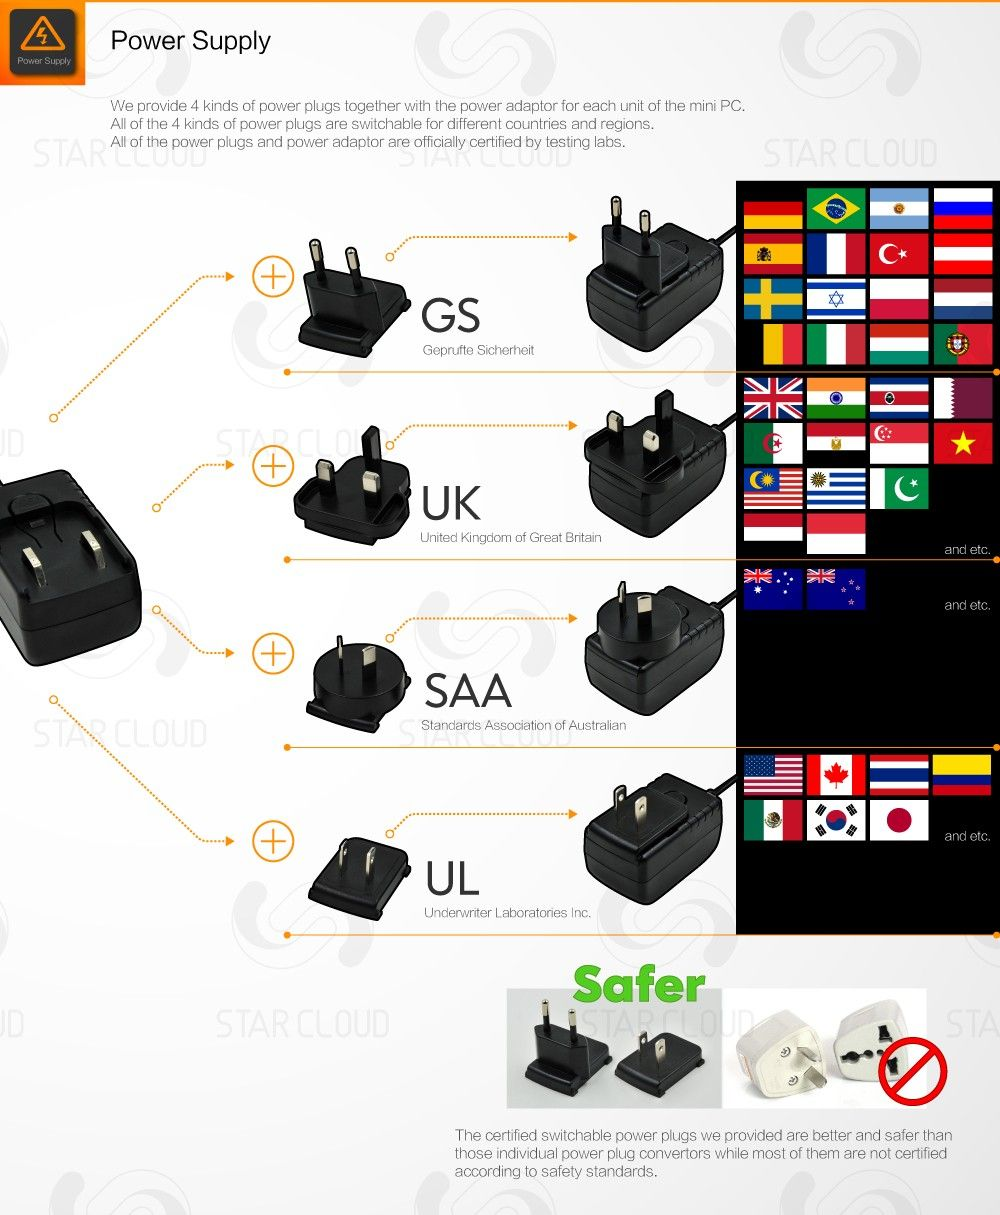 Power Supply We provide 4 kinds of power plugs together with the power adaptor for each unit of the mini PC. All of the 4 kinds of power plugs are switchable for different countries and regions. All of the power plugs and power adaptor are officially certified by testing labs. Geprufte	Sicherheit Safer The certified switchable power plugs we provided are better and safer than those individual power plug convertors while most of them are not certified according to safety standards.